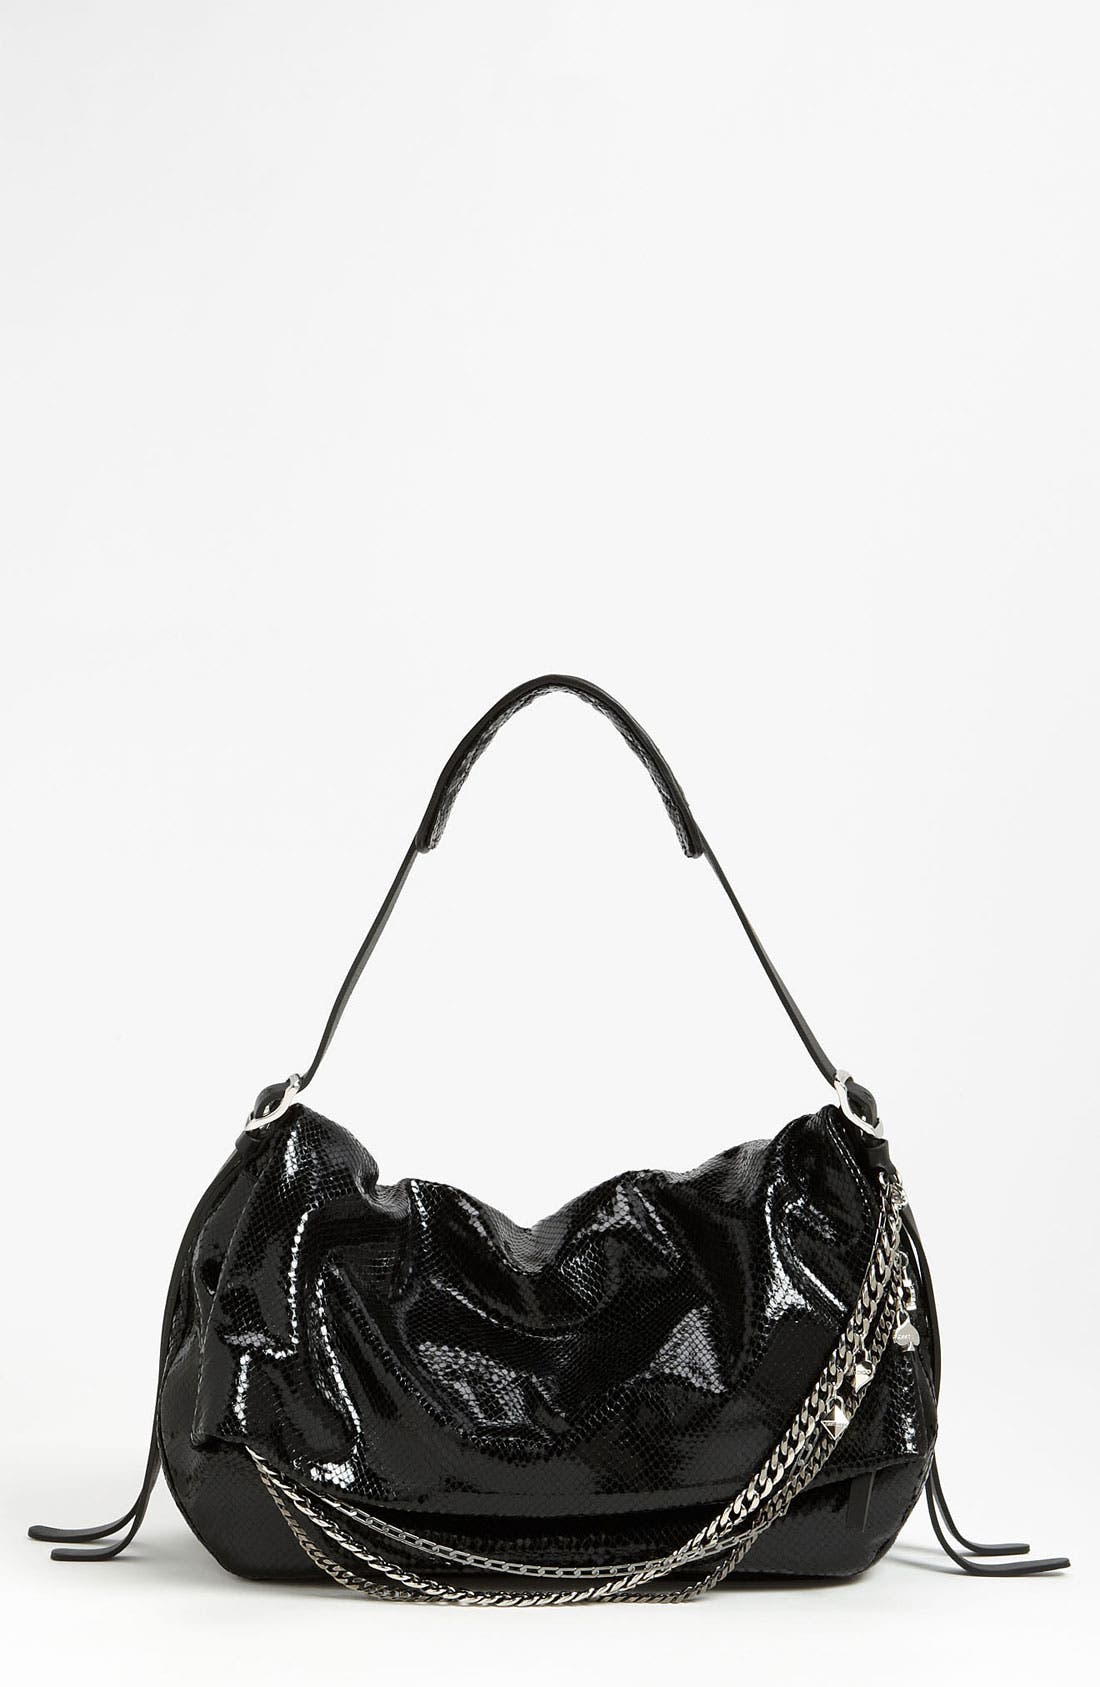 Main Image - Jimmy Choo 'Biker' Snake Embossed Leather Shoulder Bag